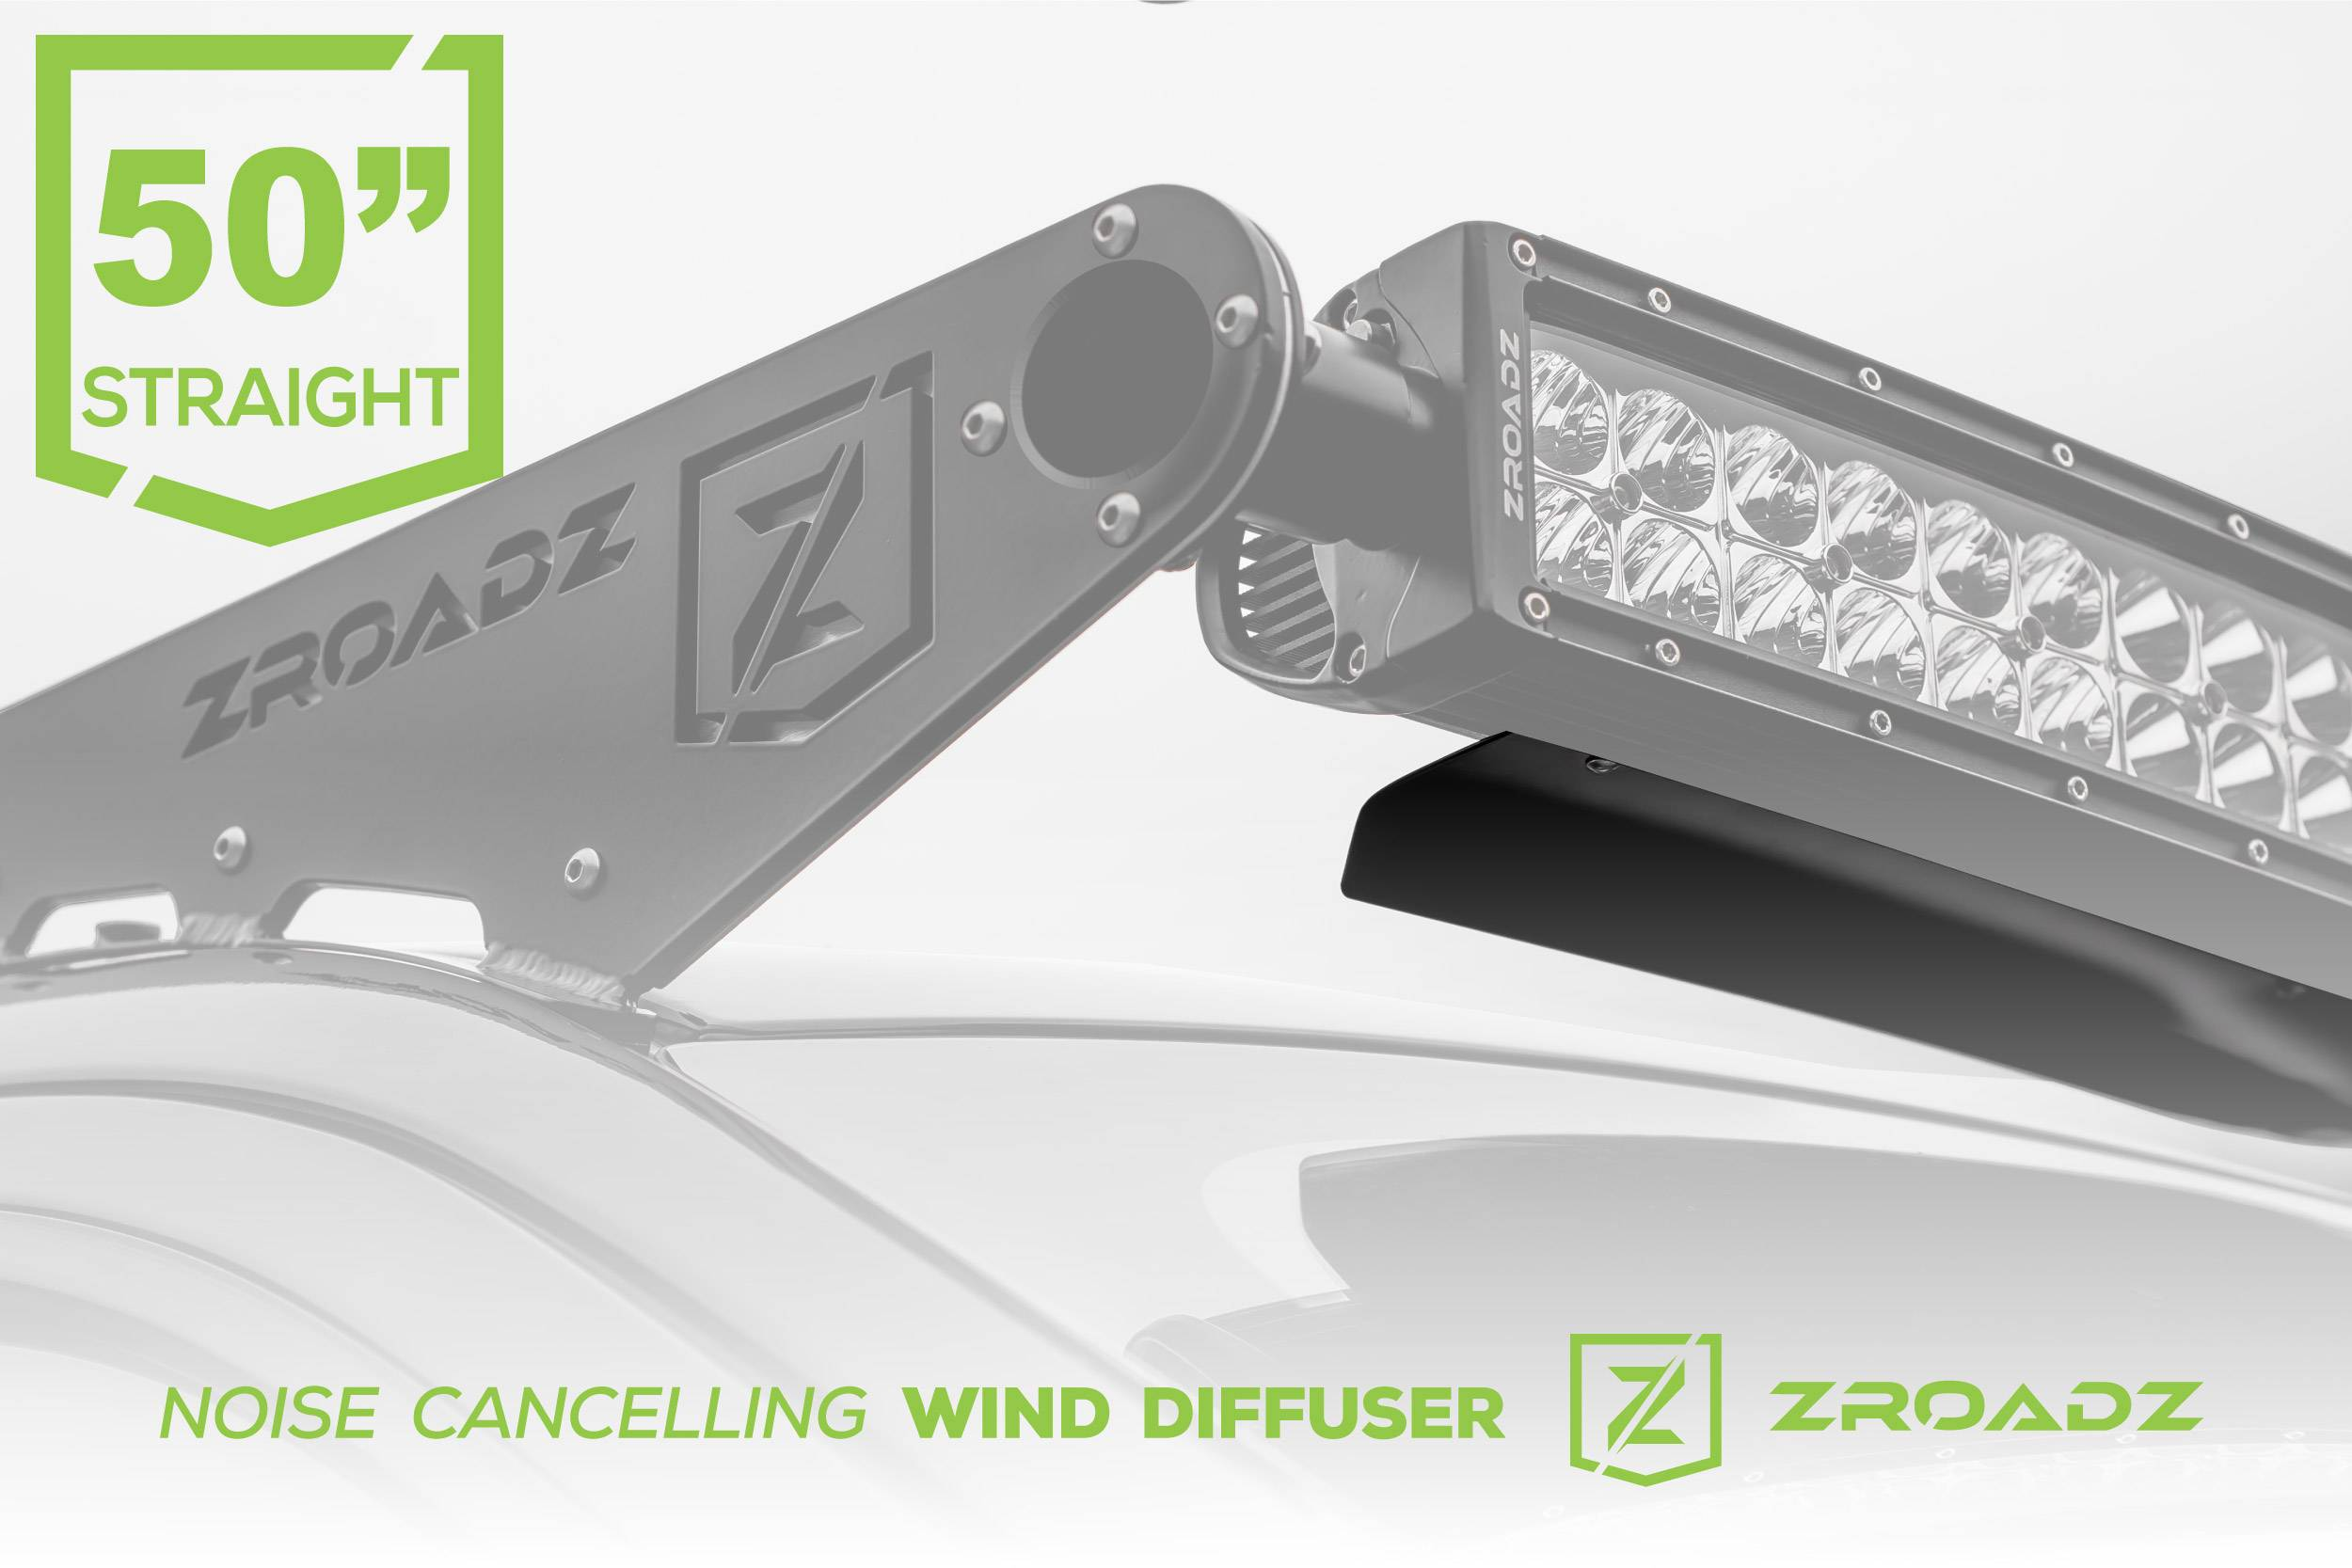 ZROADZ                                             - Noise Cancelling Wind Diffuser for (1) 50 Inch Straight LED Light Bar - PN #Z330050S